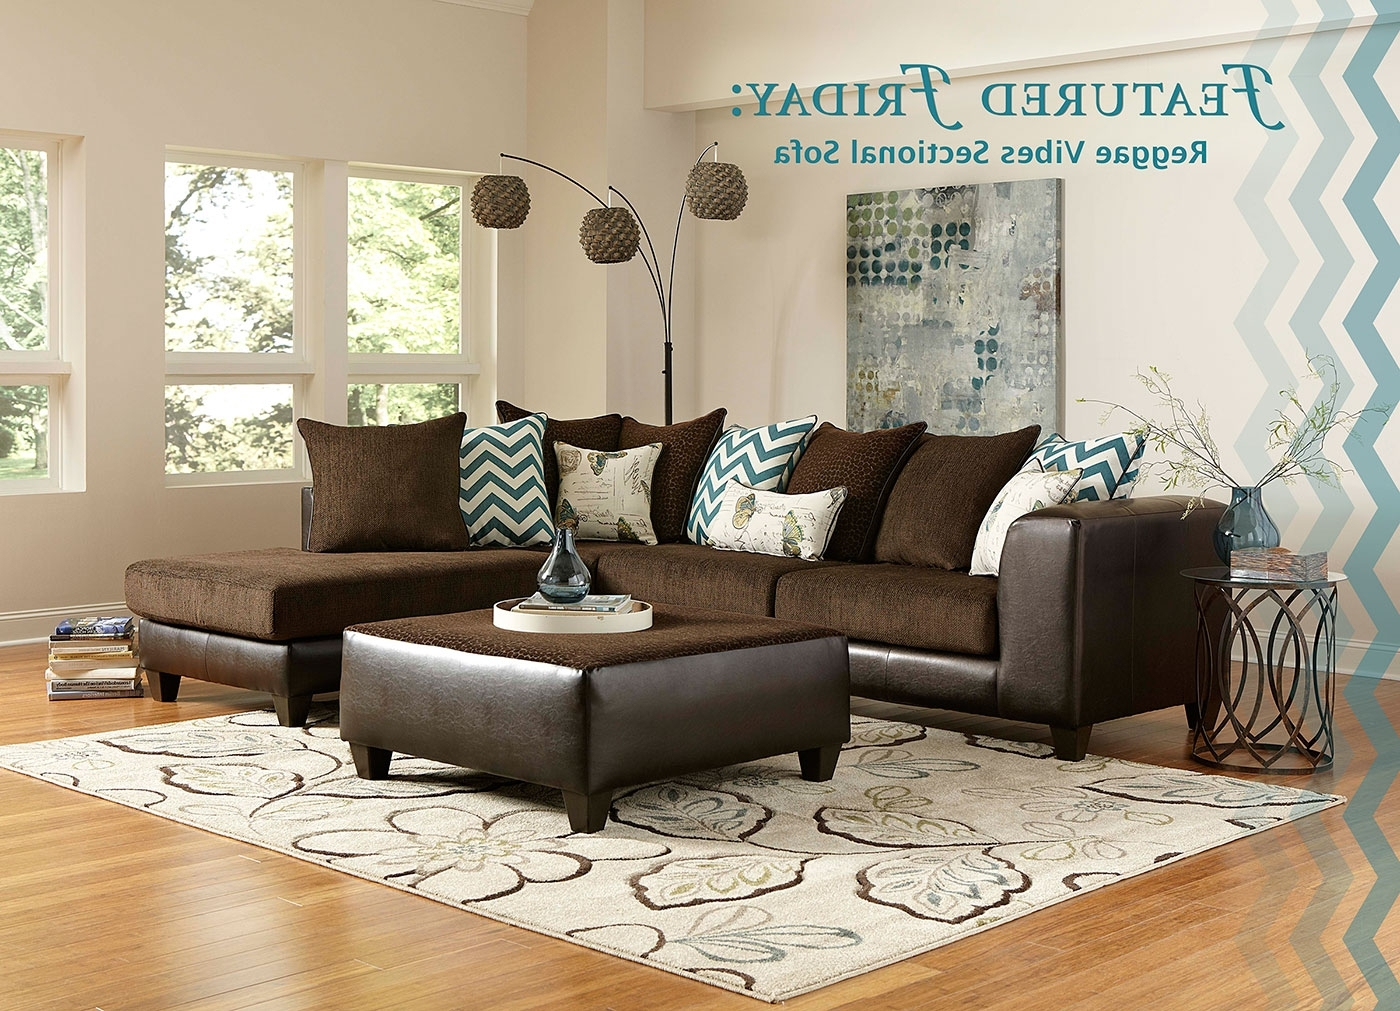 Newest Furniture: American Freight Sectionals For Luxury Living Room In Sectional Sofas In Savannah Ga (View 12 of 20)